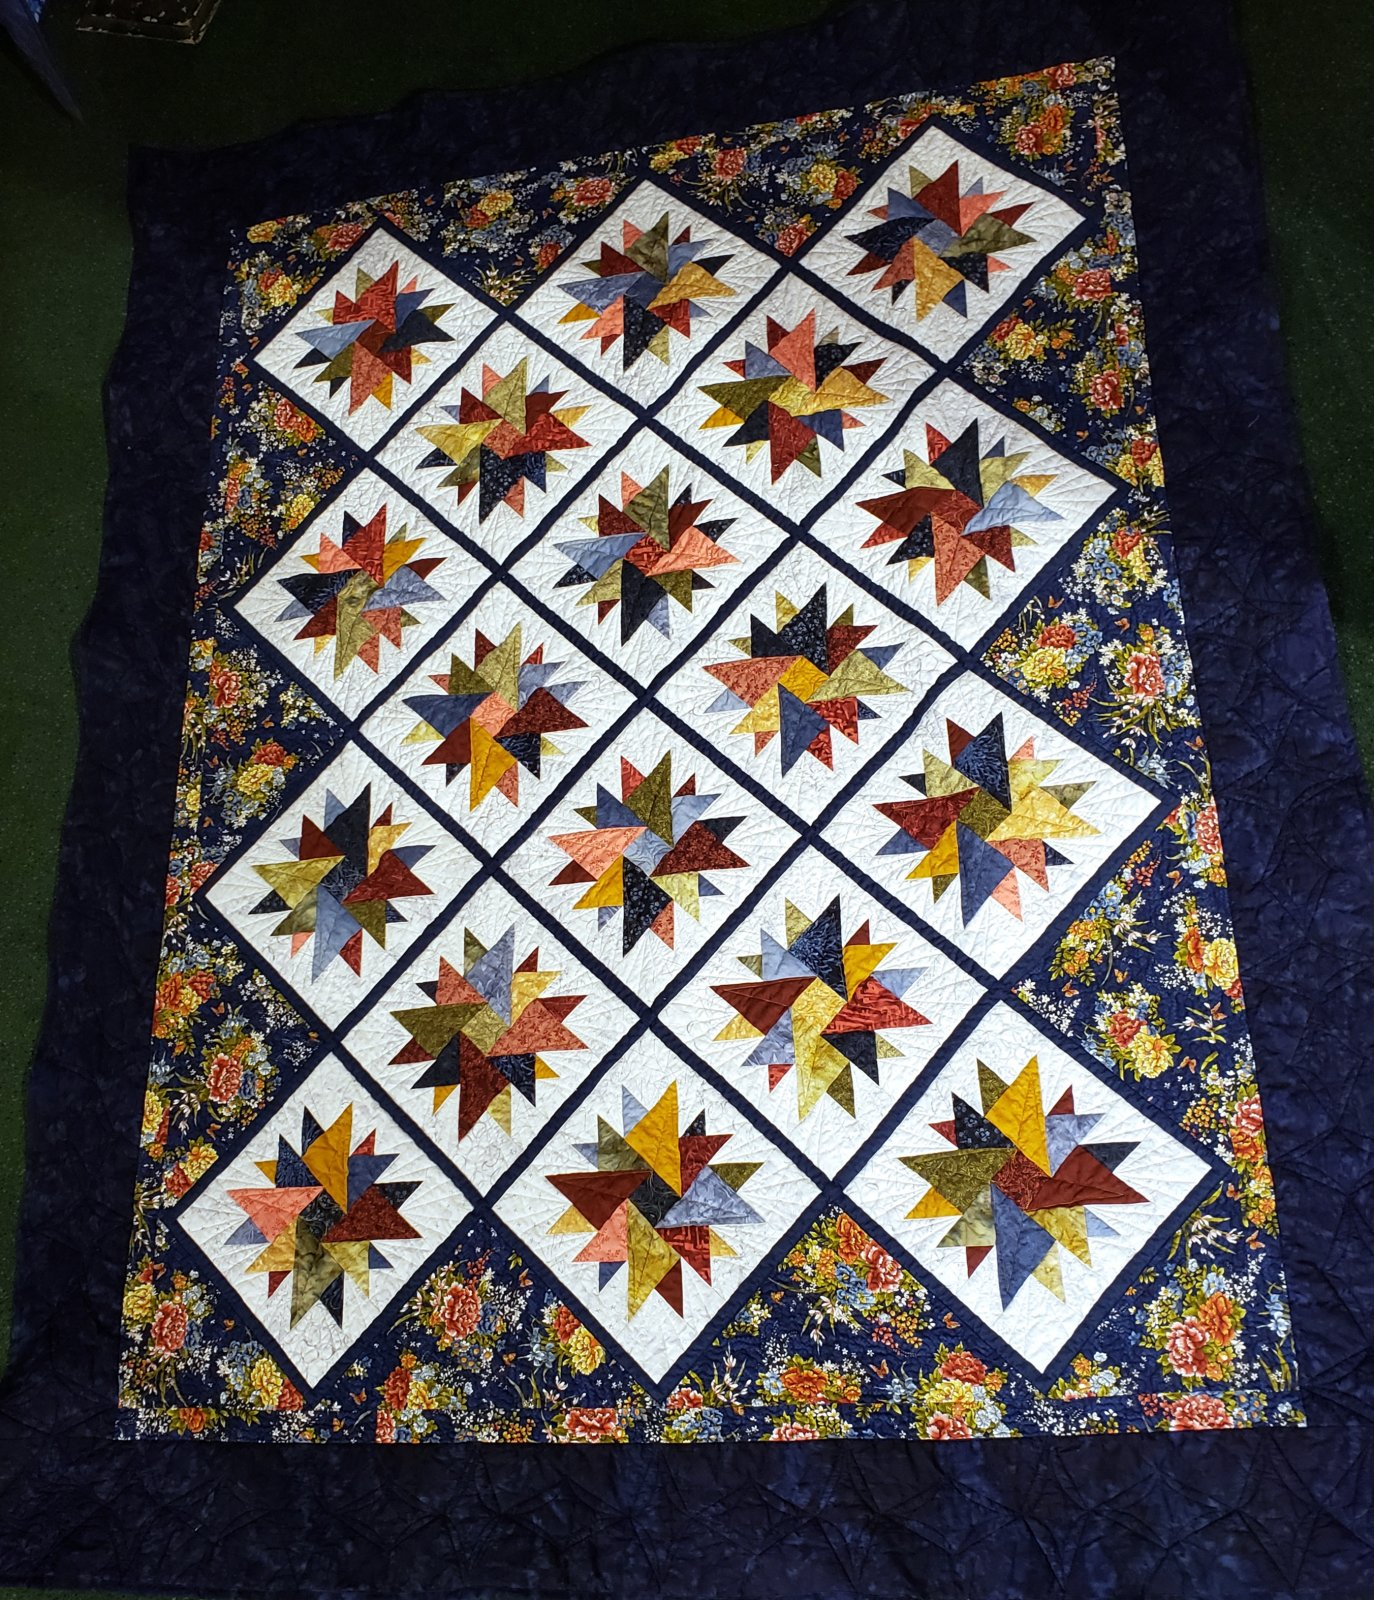 Diamond in the Rough Quilt Kit - 70 x 85